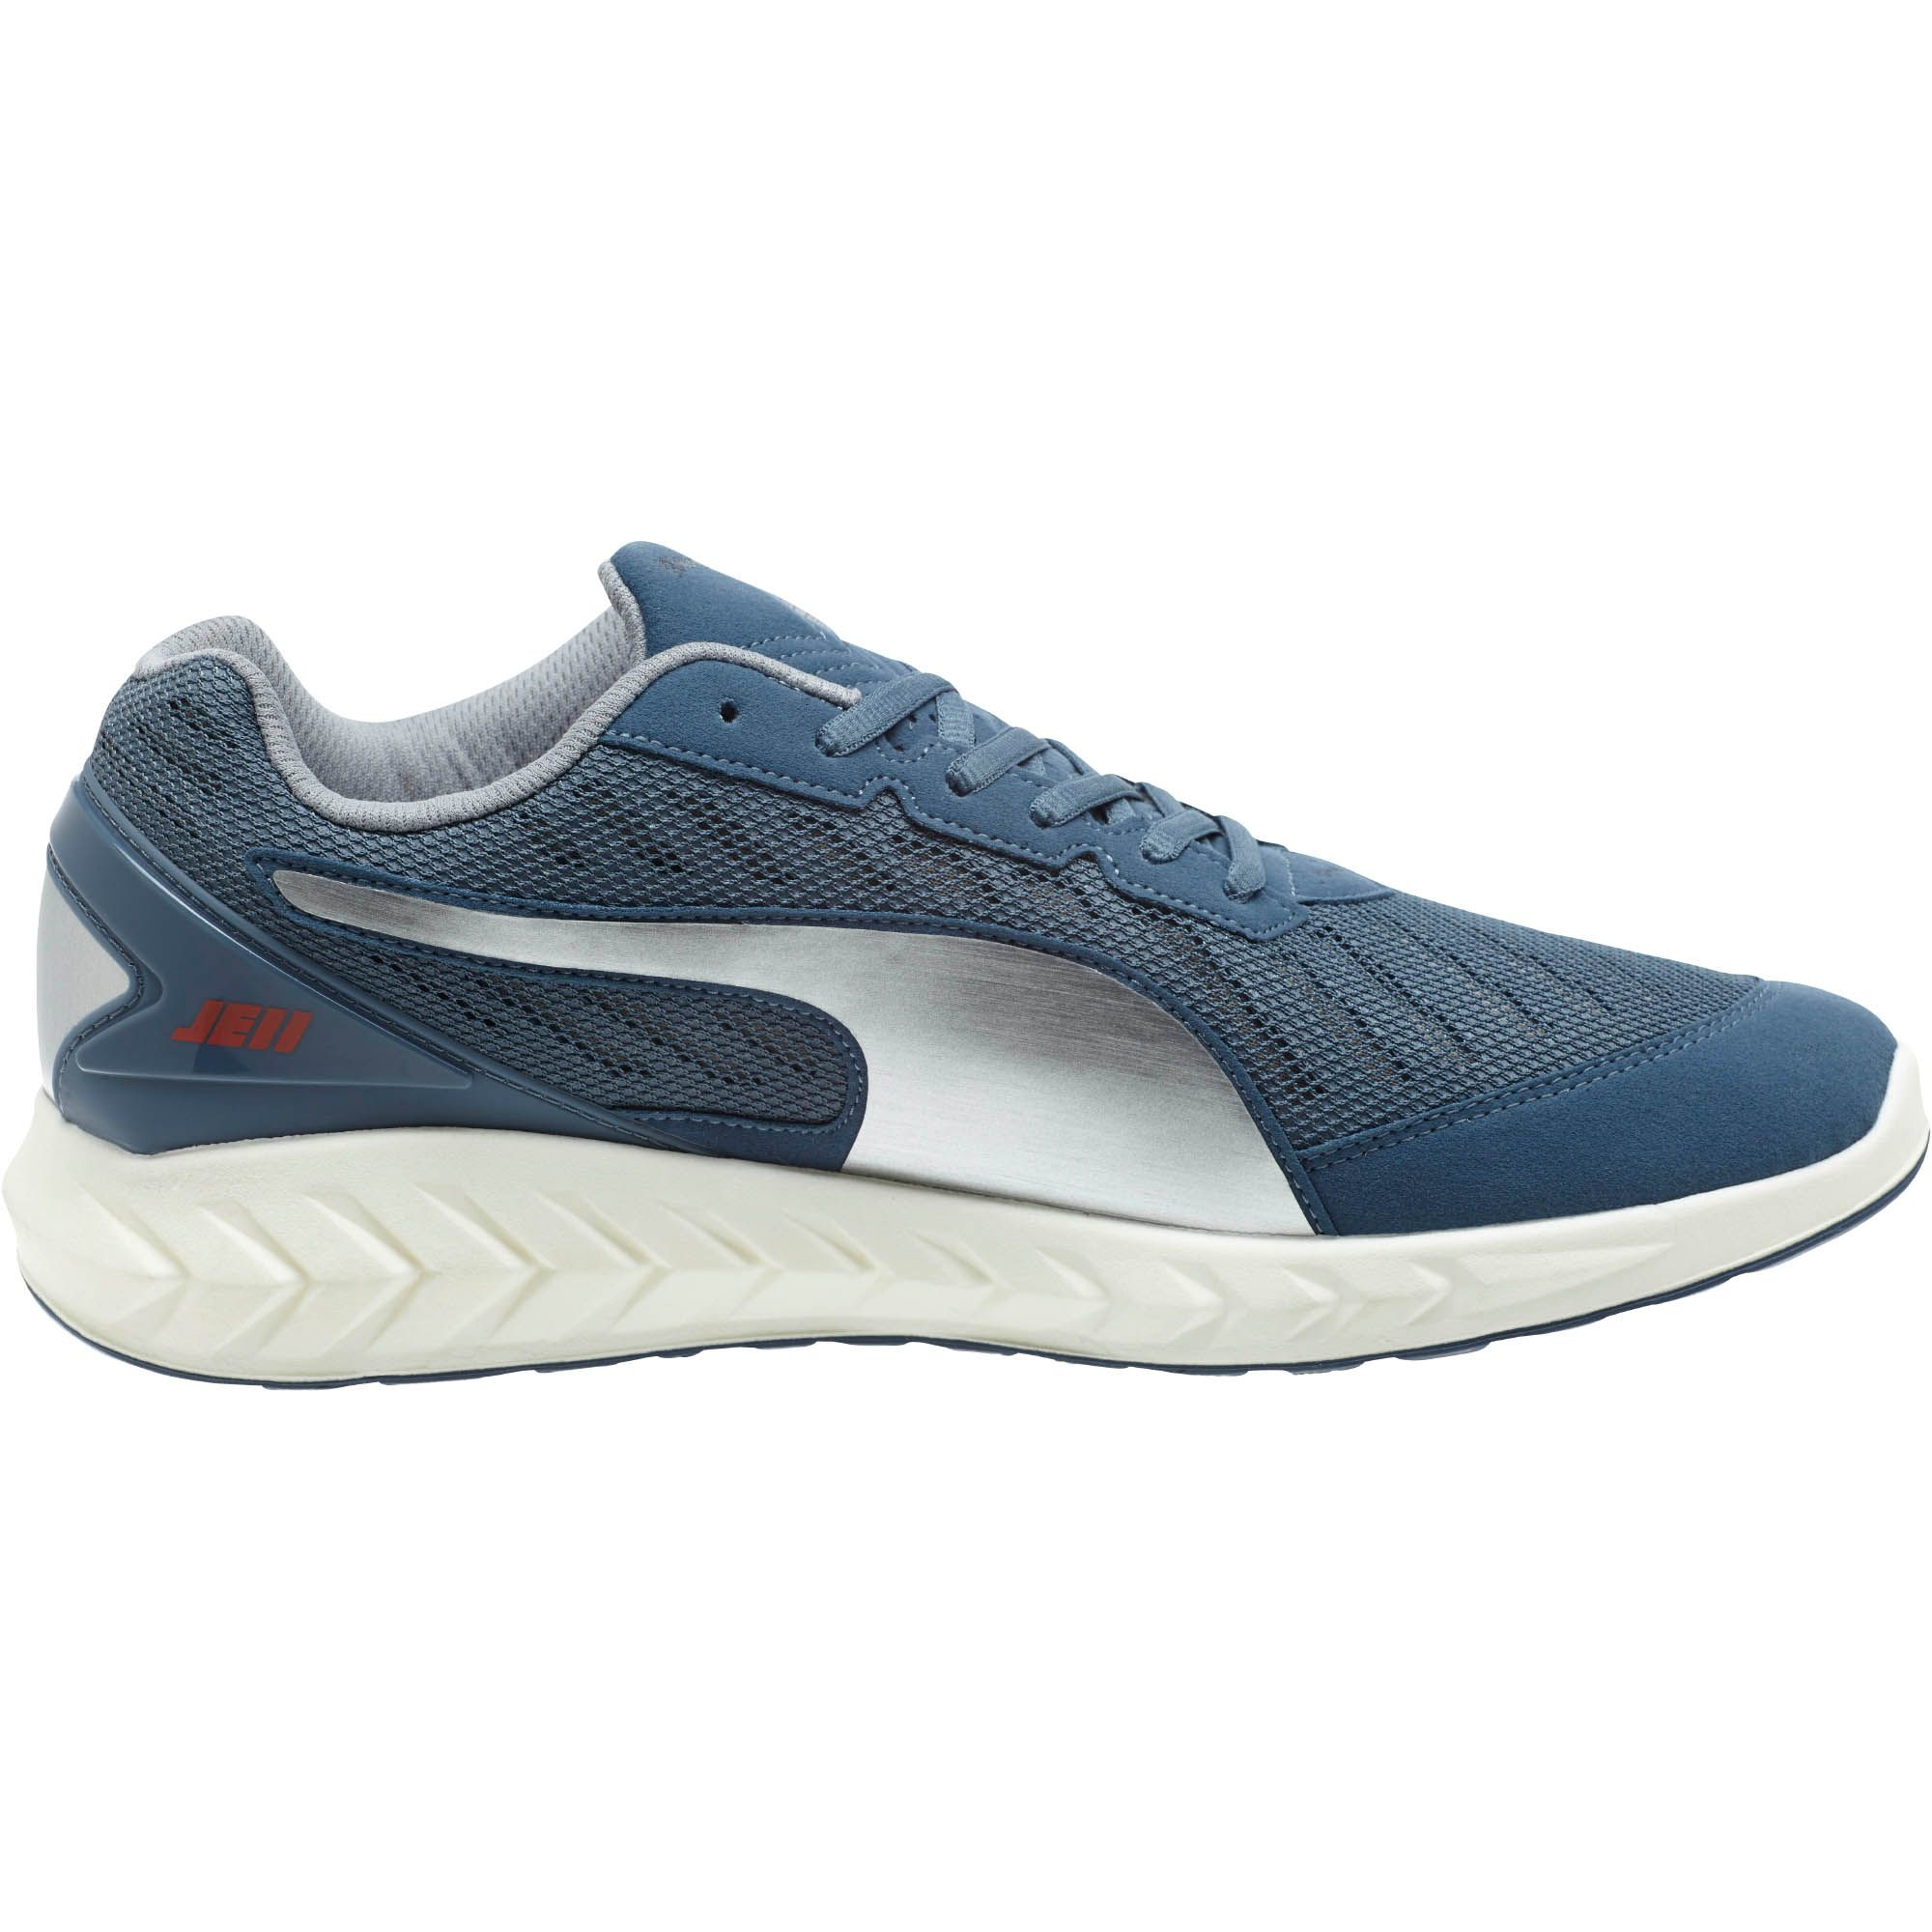 809076c65876db Lyst - PUMA Ignite Ultimate Je11 Men s Running Shoes in Blue for Men